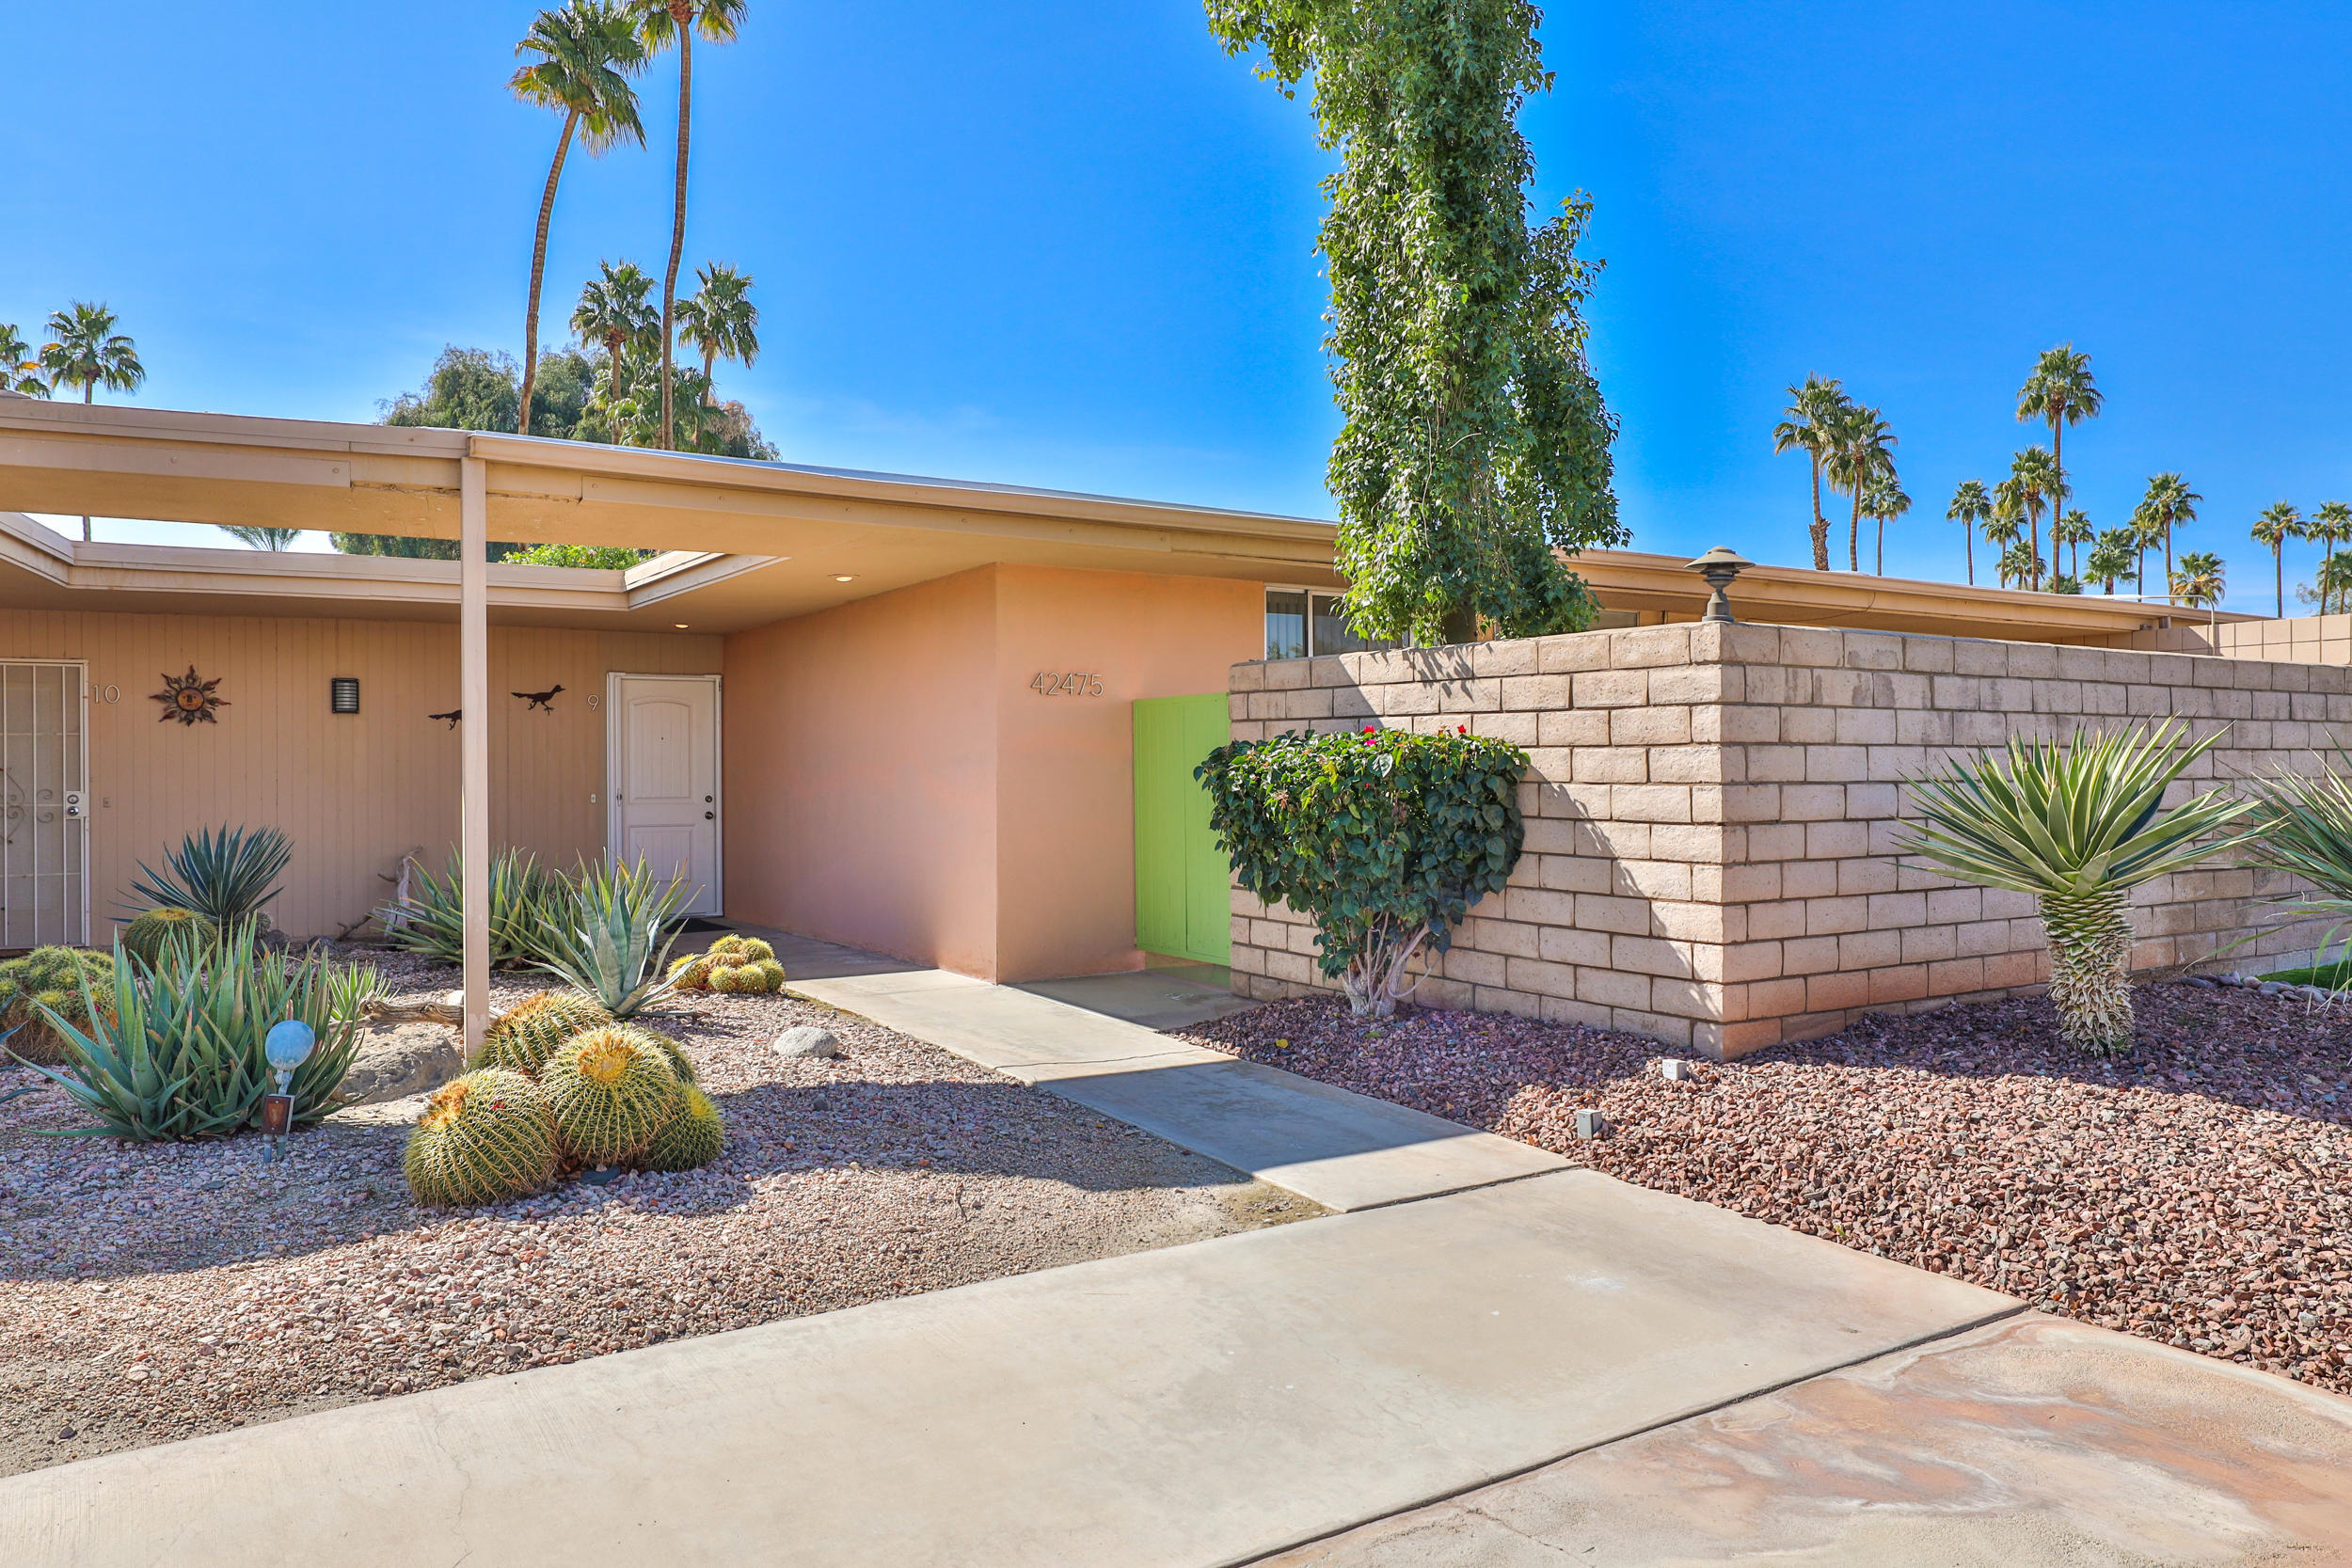 Don't miss your chance to own a Donald Wexler built Mid-Century Modern in The Colonies located just off of one of the finest 27 hole championship golf courses in the Valley with Southern exposure! This spacious condo has a wall of windows that overlook the pool, greenbelt and offer spectacular views of the double fairway golf course.  The large fireplace adds an elegant focal point to the open floor plan while both bedrooms open up to an additional private courtyard with endless mountain views.  This home features a new roof, new plumbing and a newer AC unit.  All steps away from one of 2 community pools on the property. Desert living at its best! Close proximity to all the conveniences, entertainment and shopping. Call to view today!